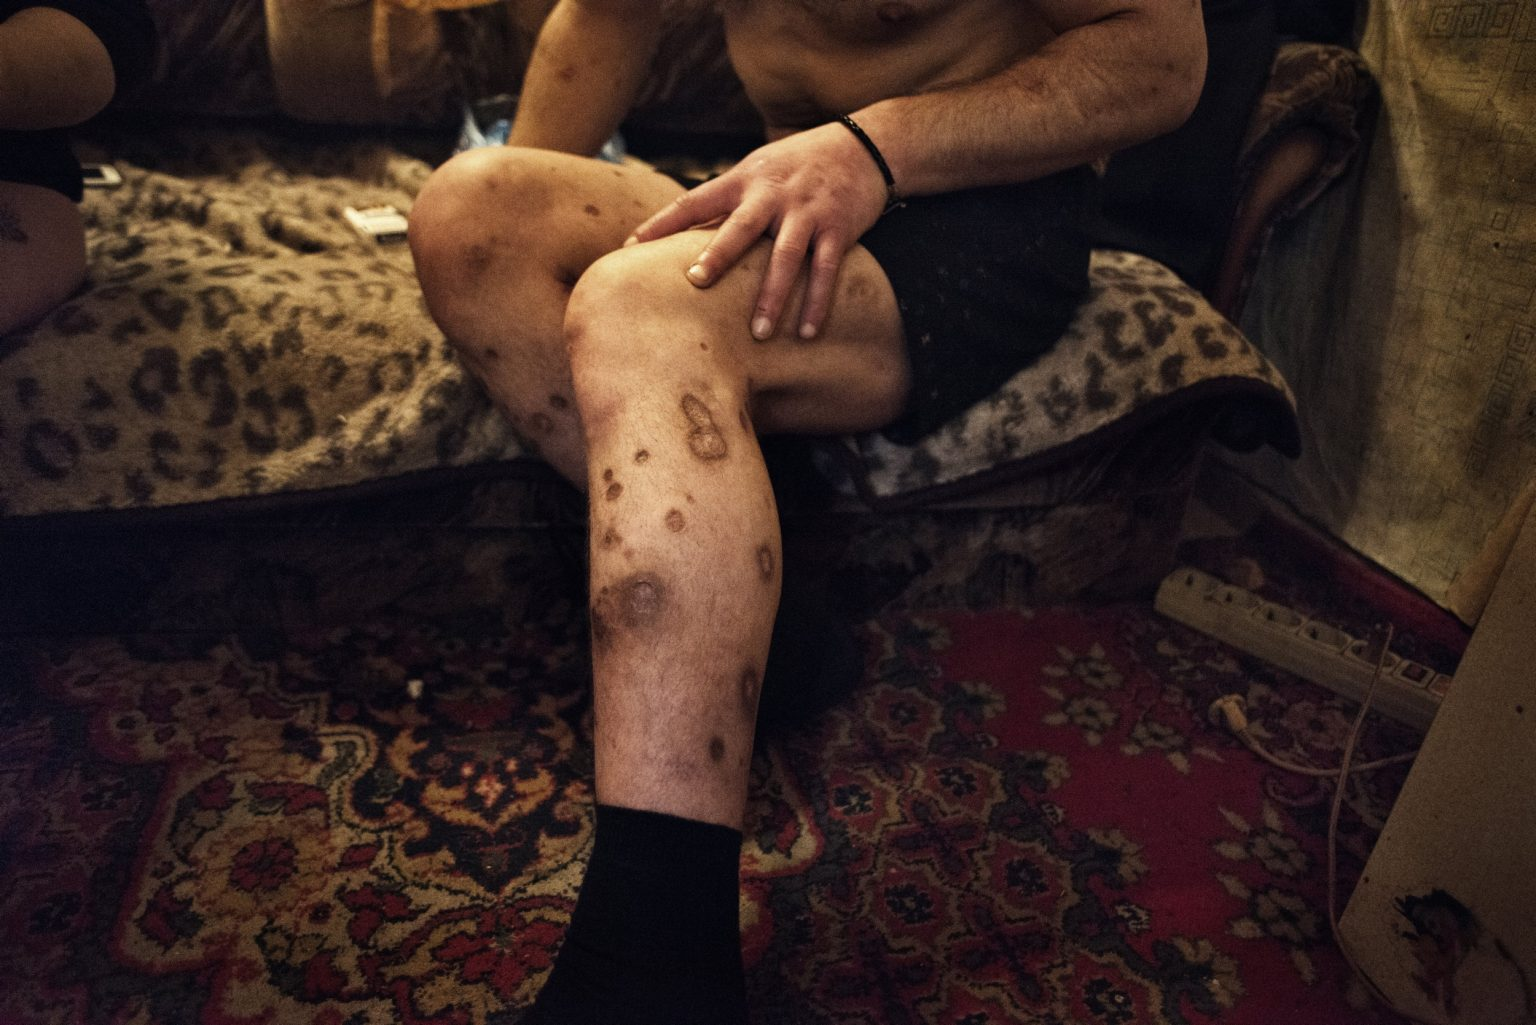 Yekaterinburg, Russia, November 2013 - Elman shows the wounds in the legs caused by the use of Krokodil and methadone. >< Yekaterinburg, Russia, novembre 2013 - Elman mostra le ferite provocate dall'uso di Krokodil e metadone.